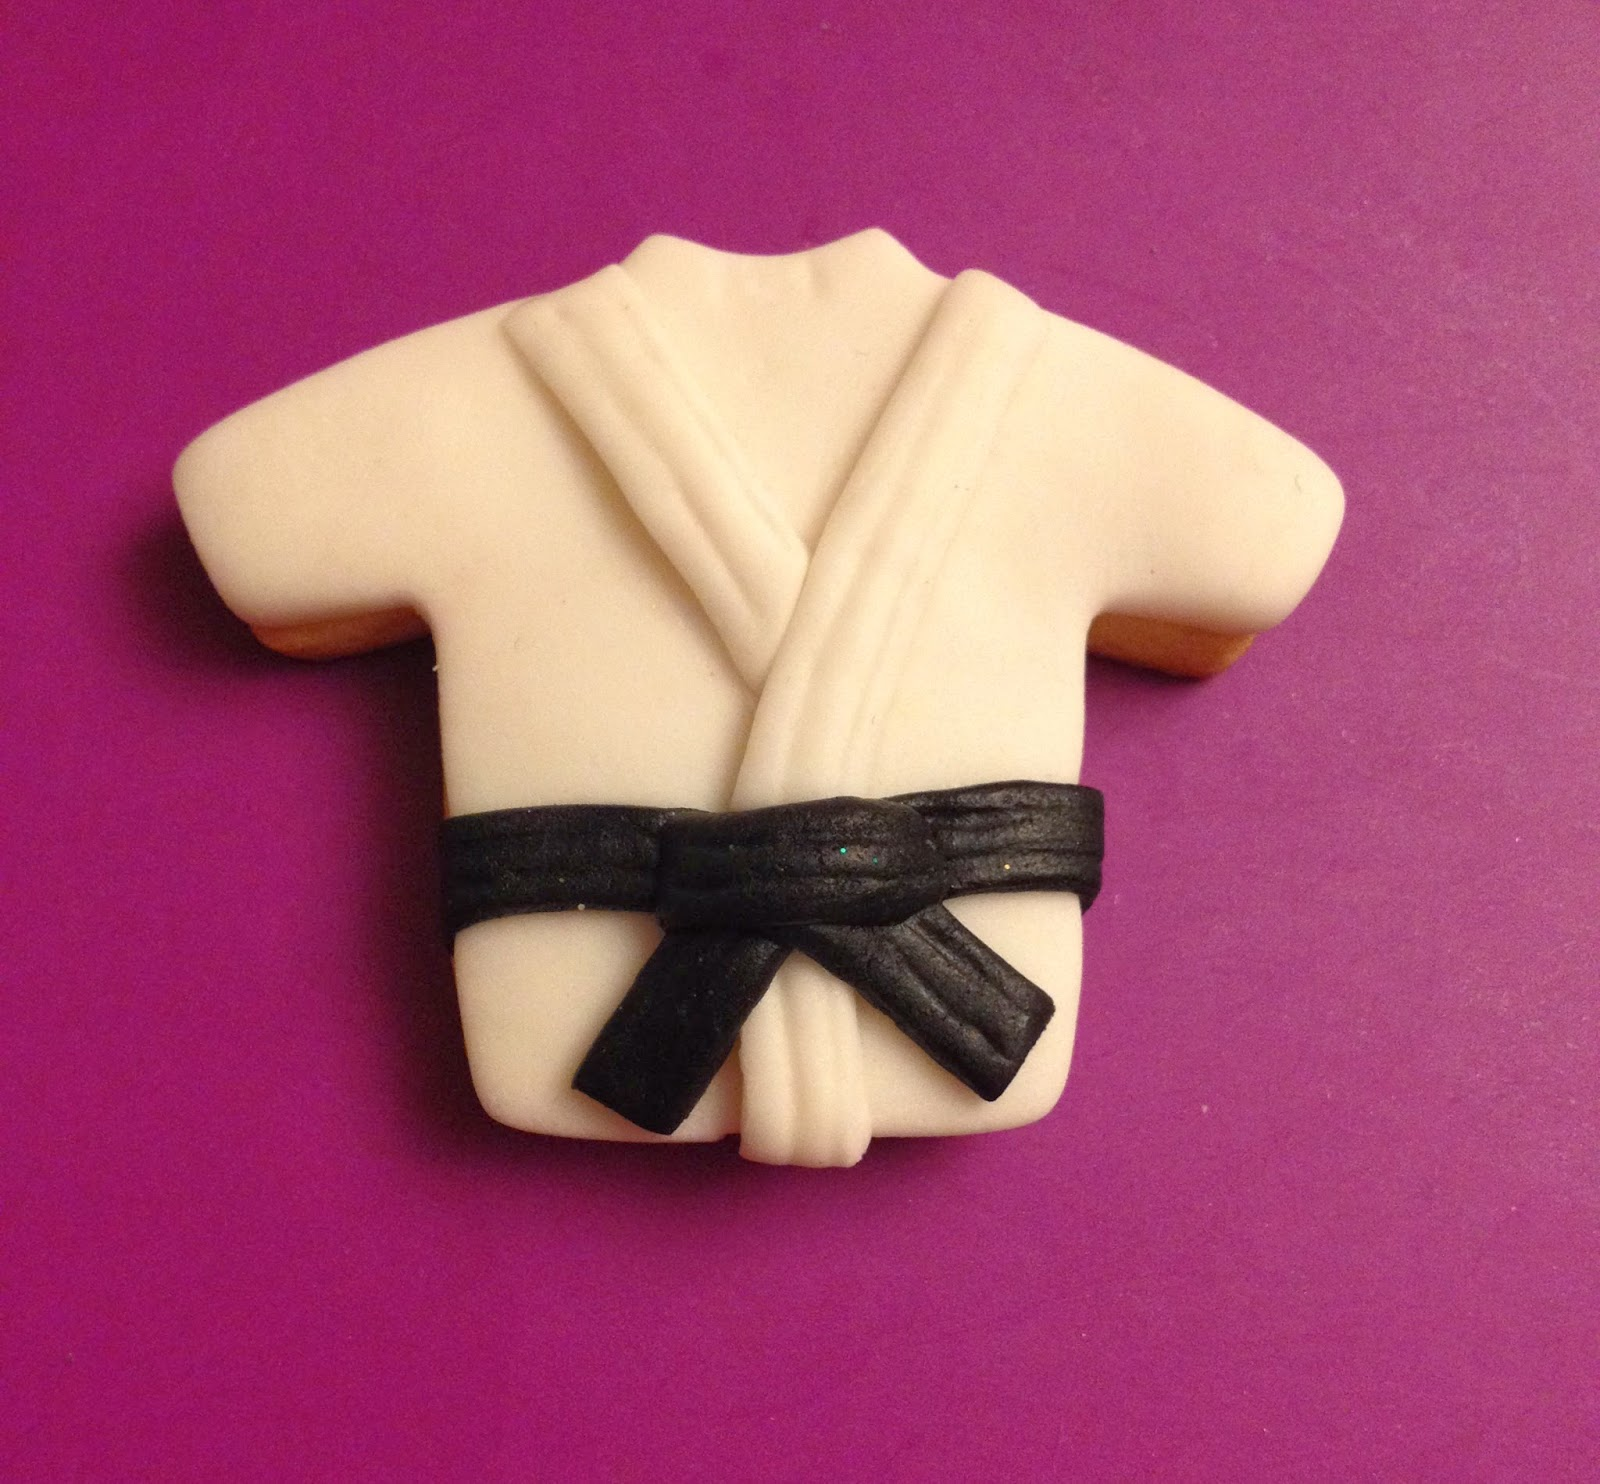 GALLETA, FONDANT, JUDO, GALLETA DECORADA